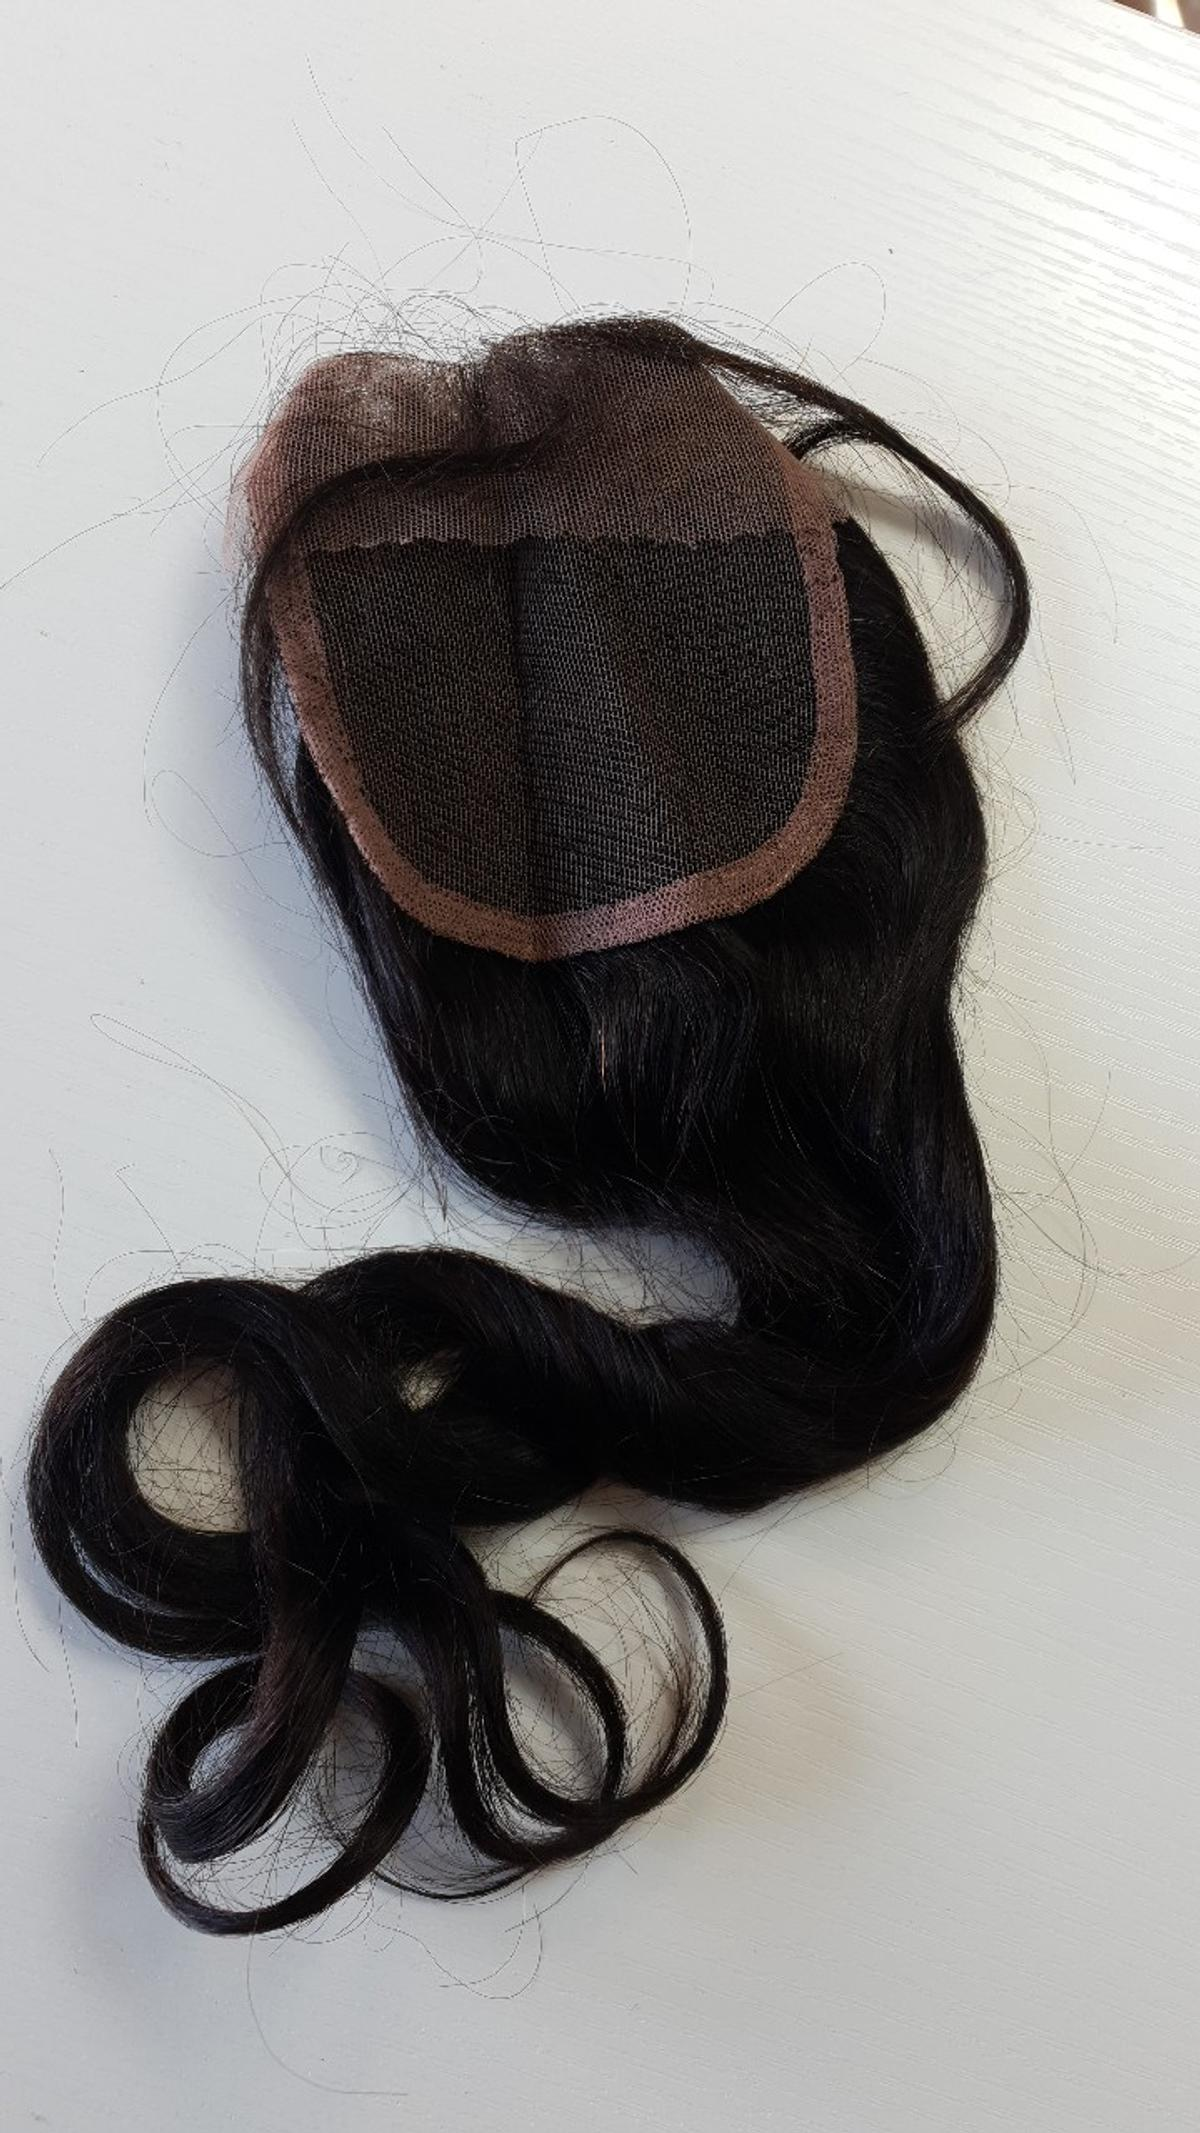 middle parting lace closure 14 inches 50g  collection in shop or next day delivery  CALL text WhatsApp for instant reply  07963605032